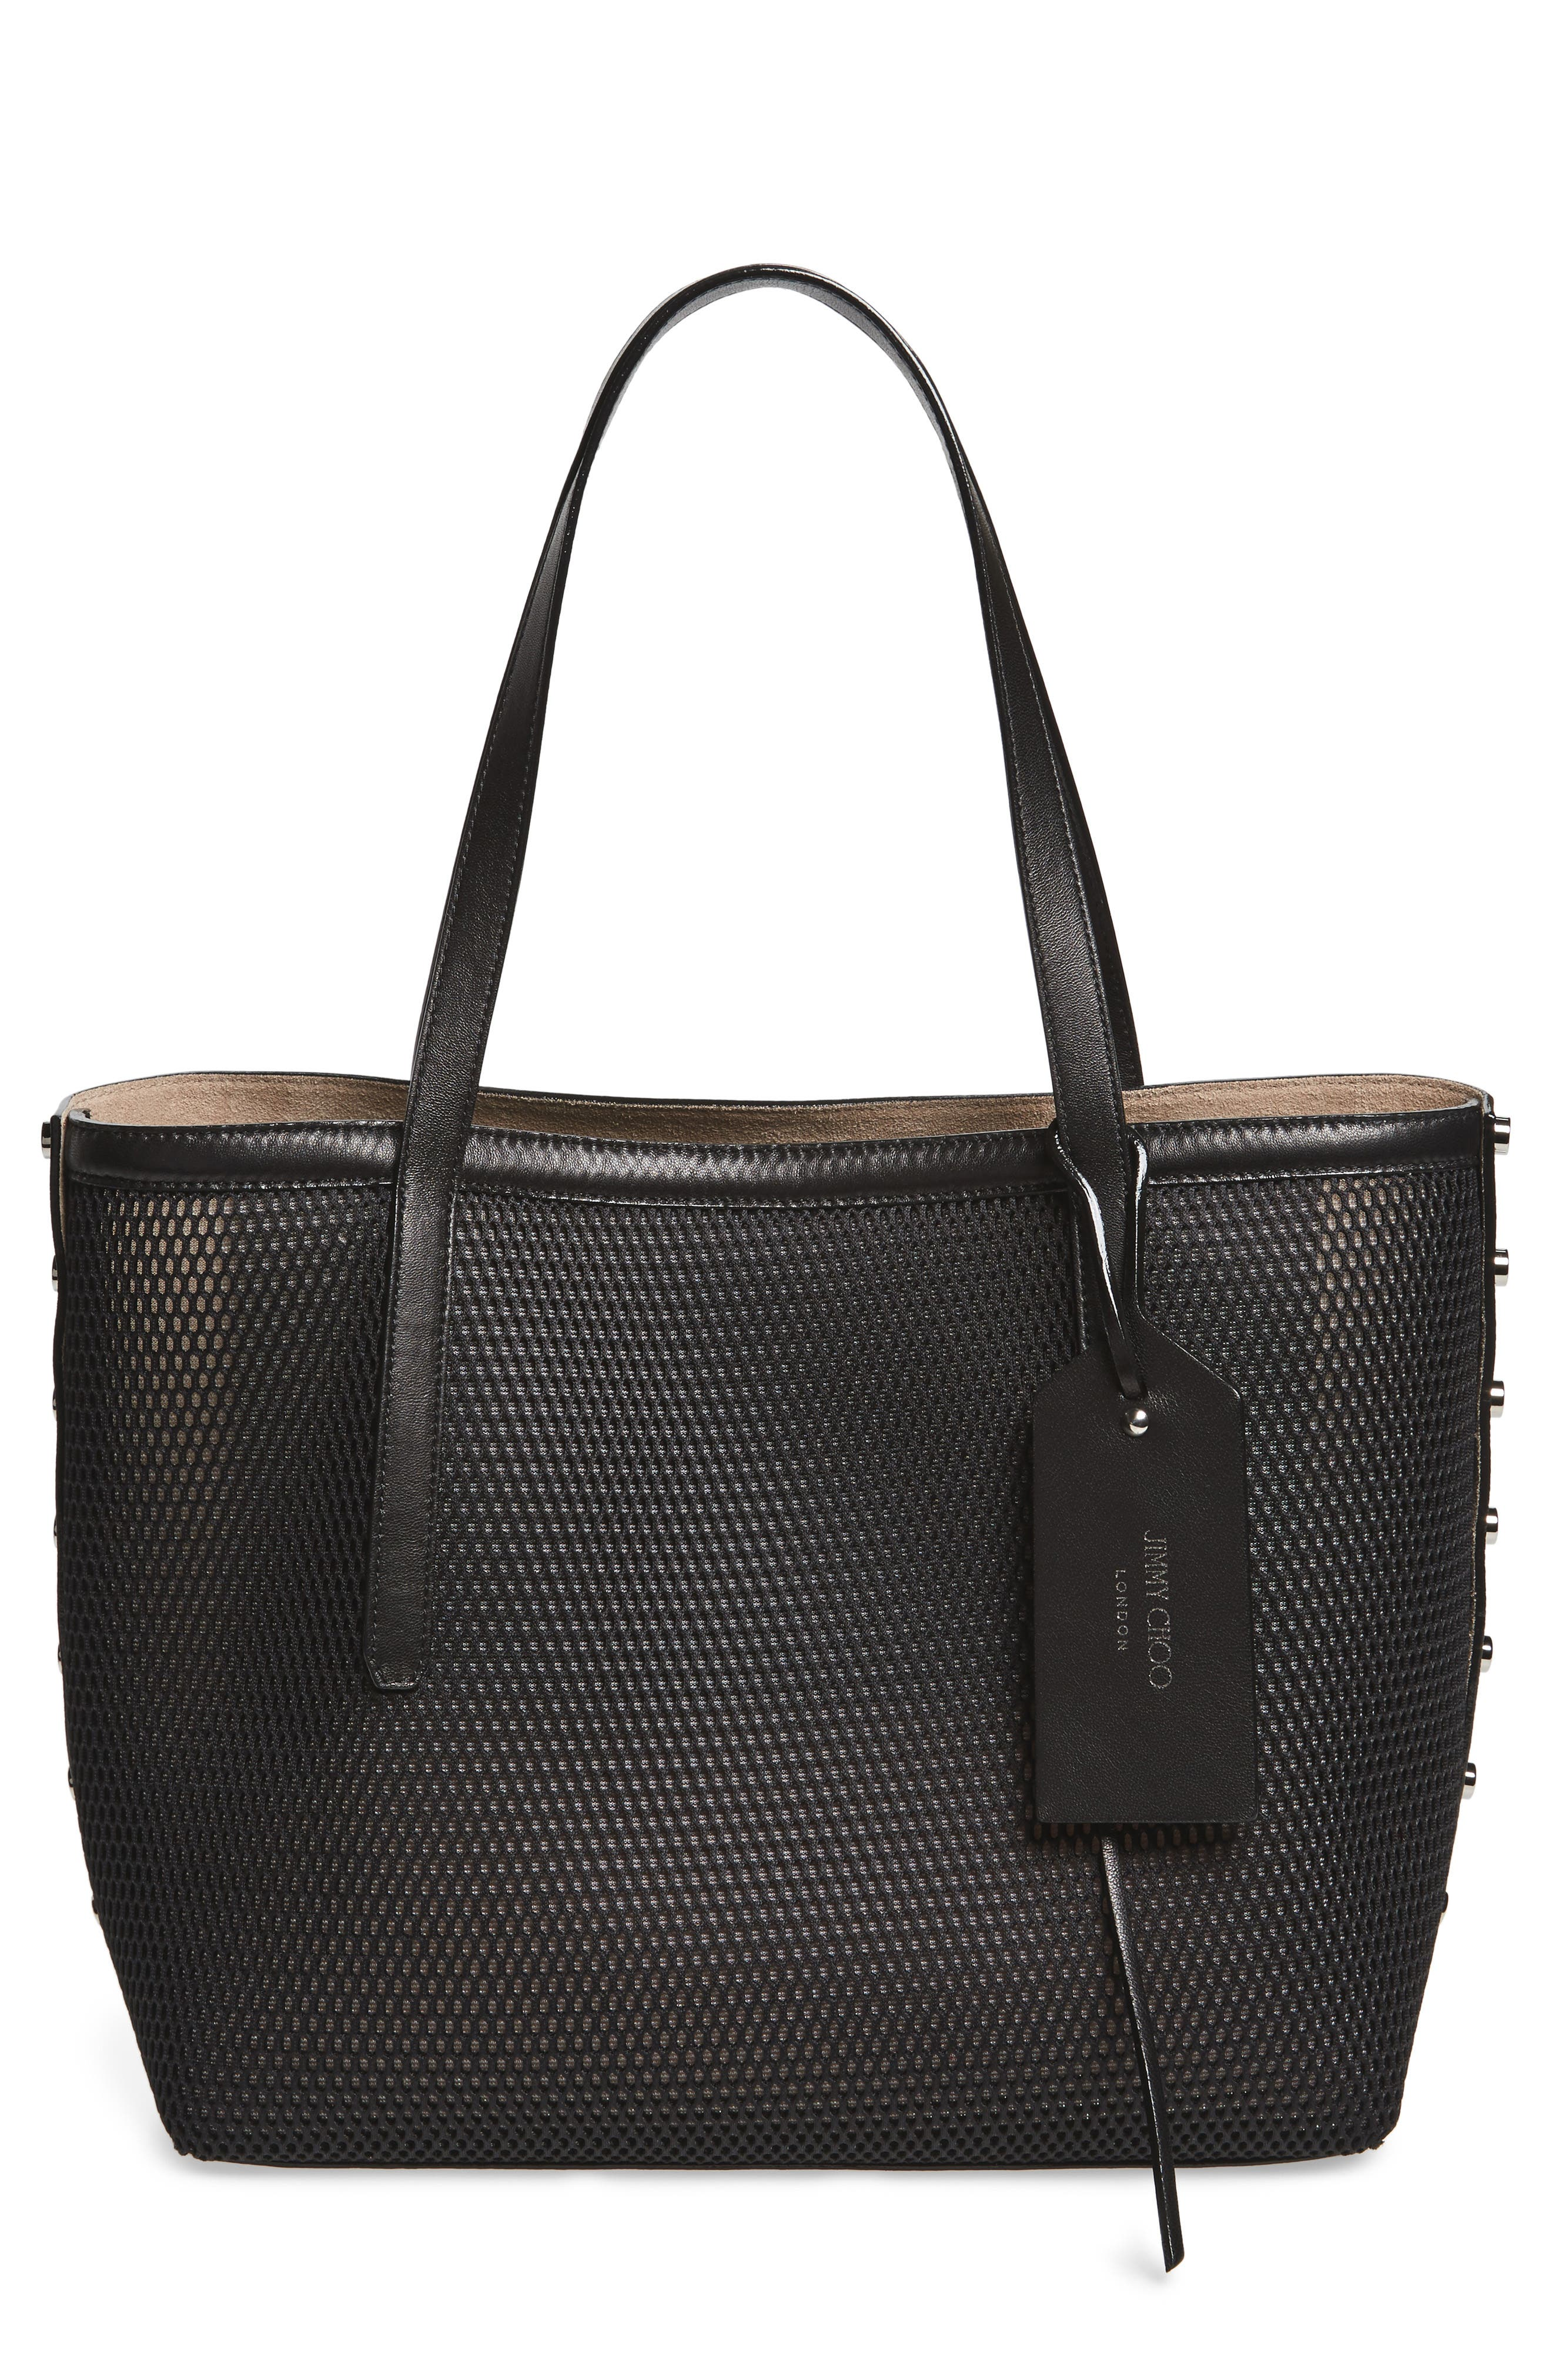 JIMMY CHOO Twist East West Mesh Tote